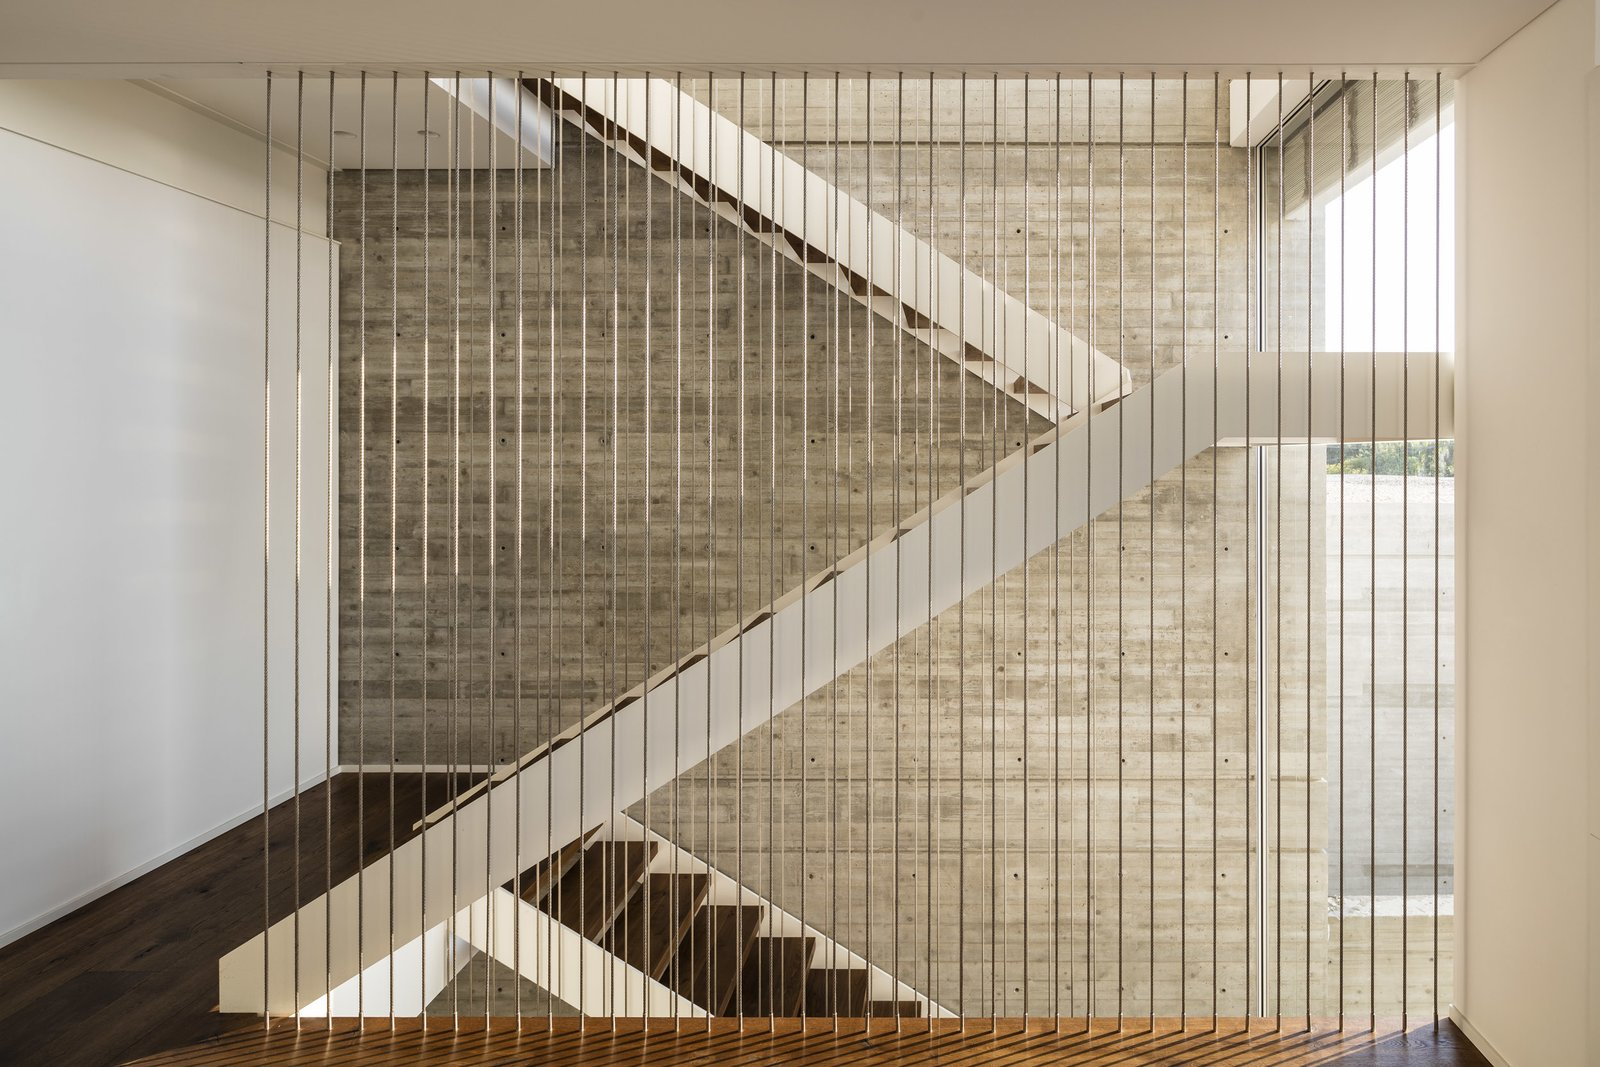 At the meeting point of these two masses, public and private spaces, is a vertical axis that cuts the horizontal plane with the use of a staircase that goes through all levels of the house.  Tagged: Staircase.  The Dual House by Axelrod Architects